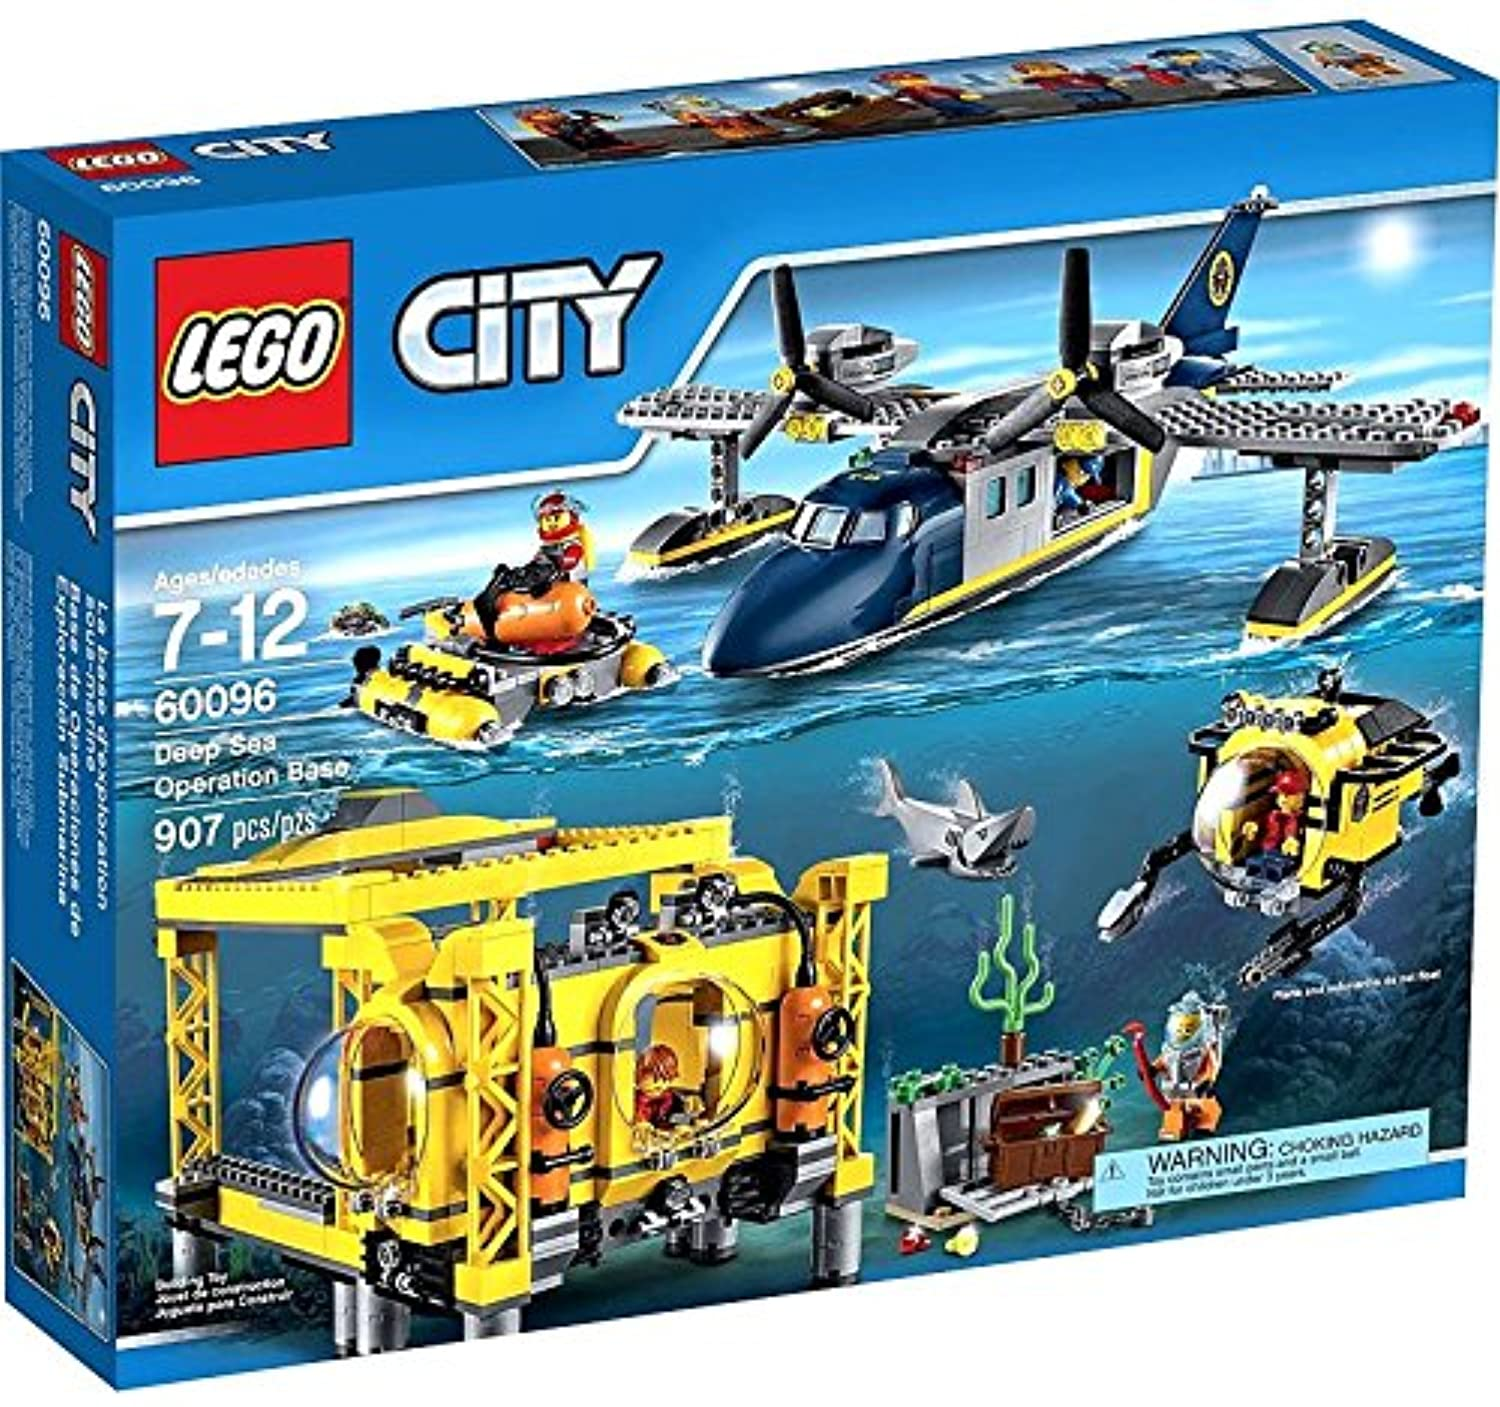 Lego 60096 City - Deep sea Operation Base by LEGO